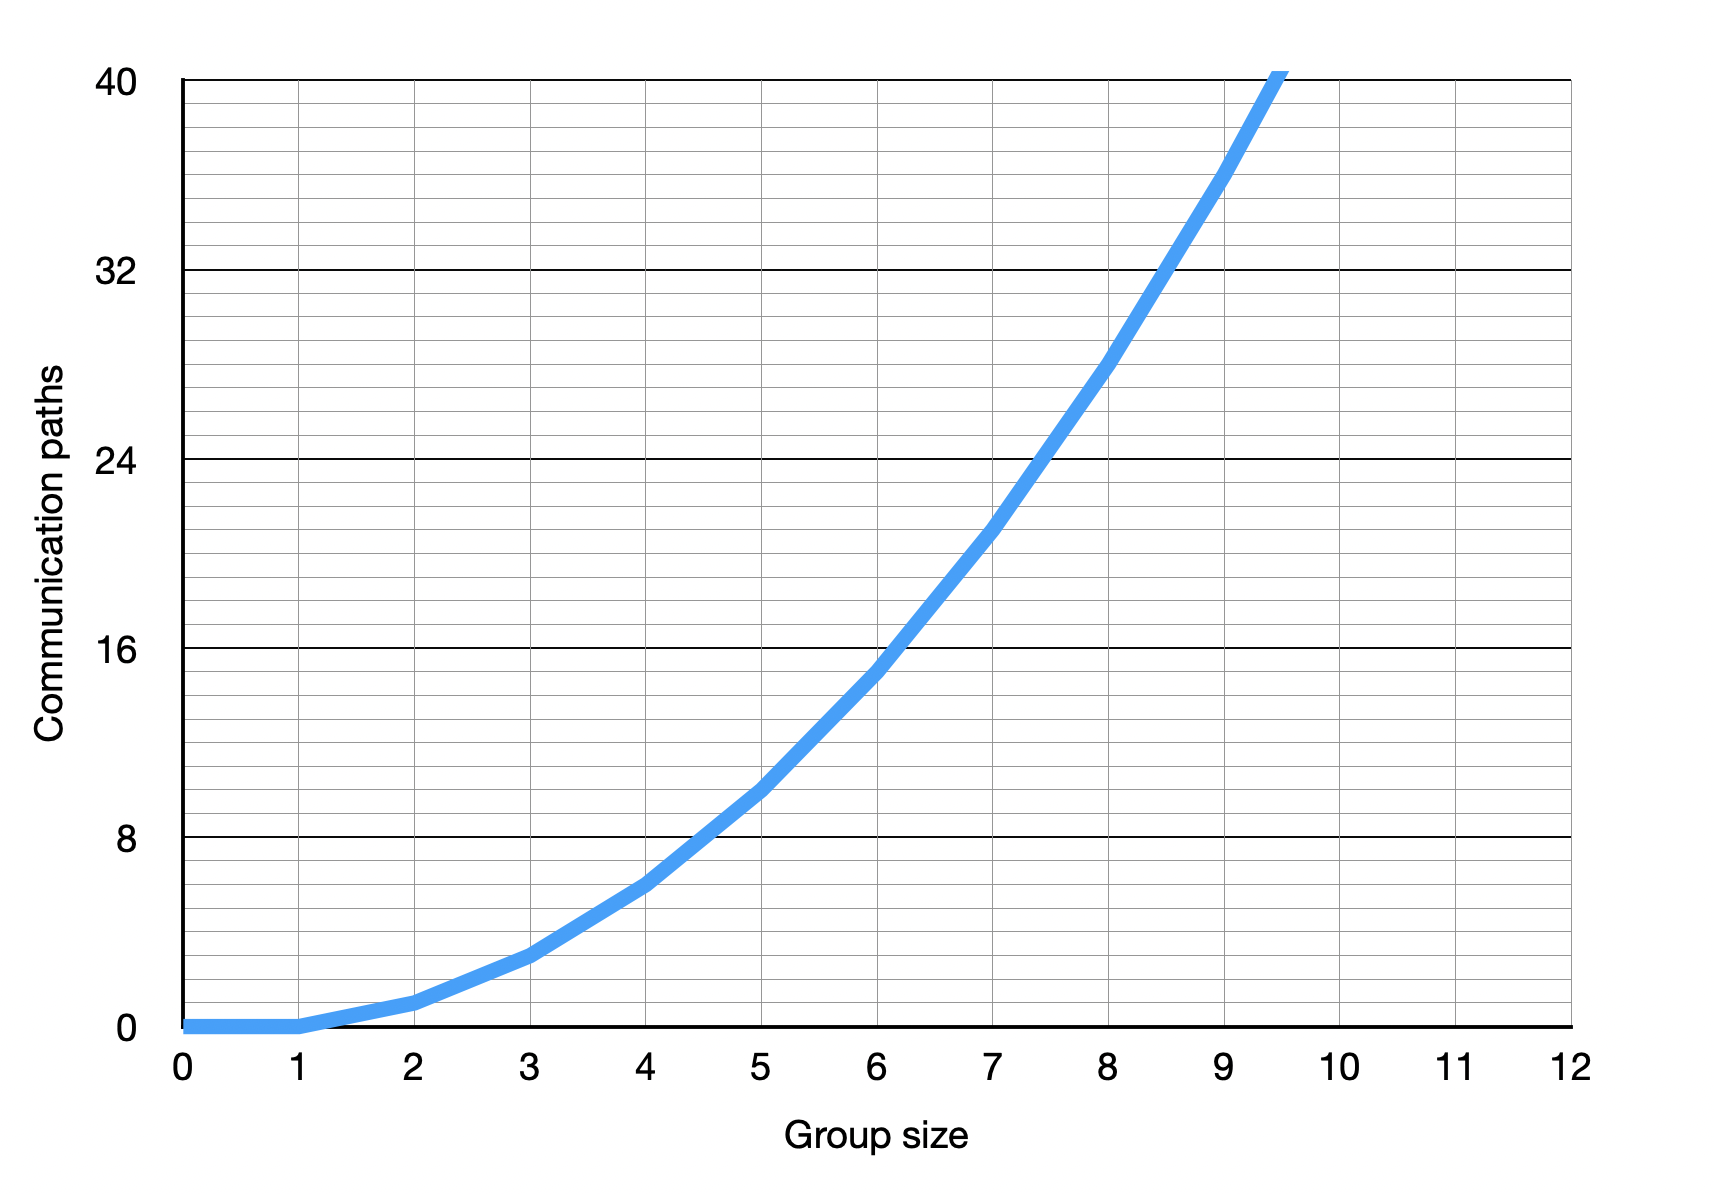 A plot showing how the number of connection increases with the team size